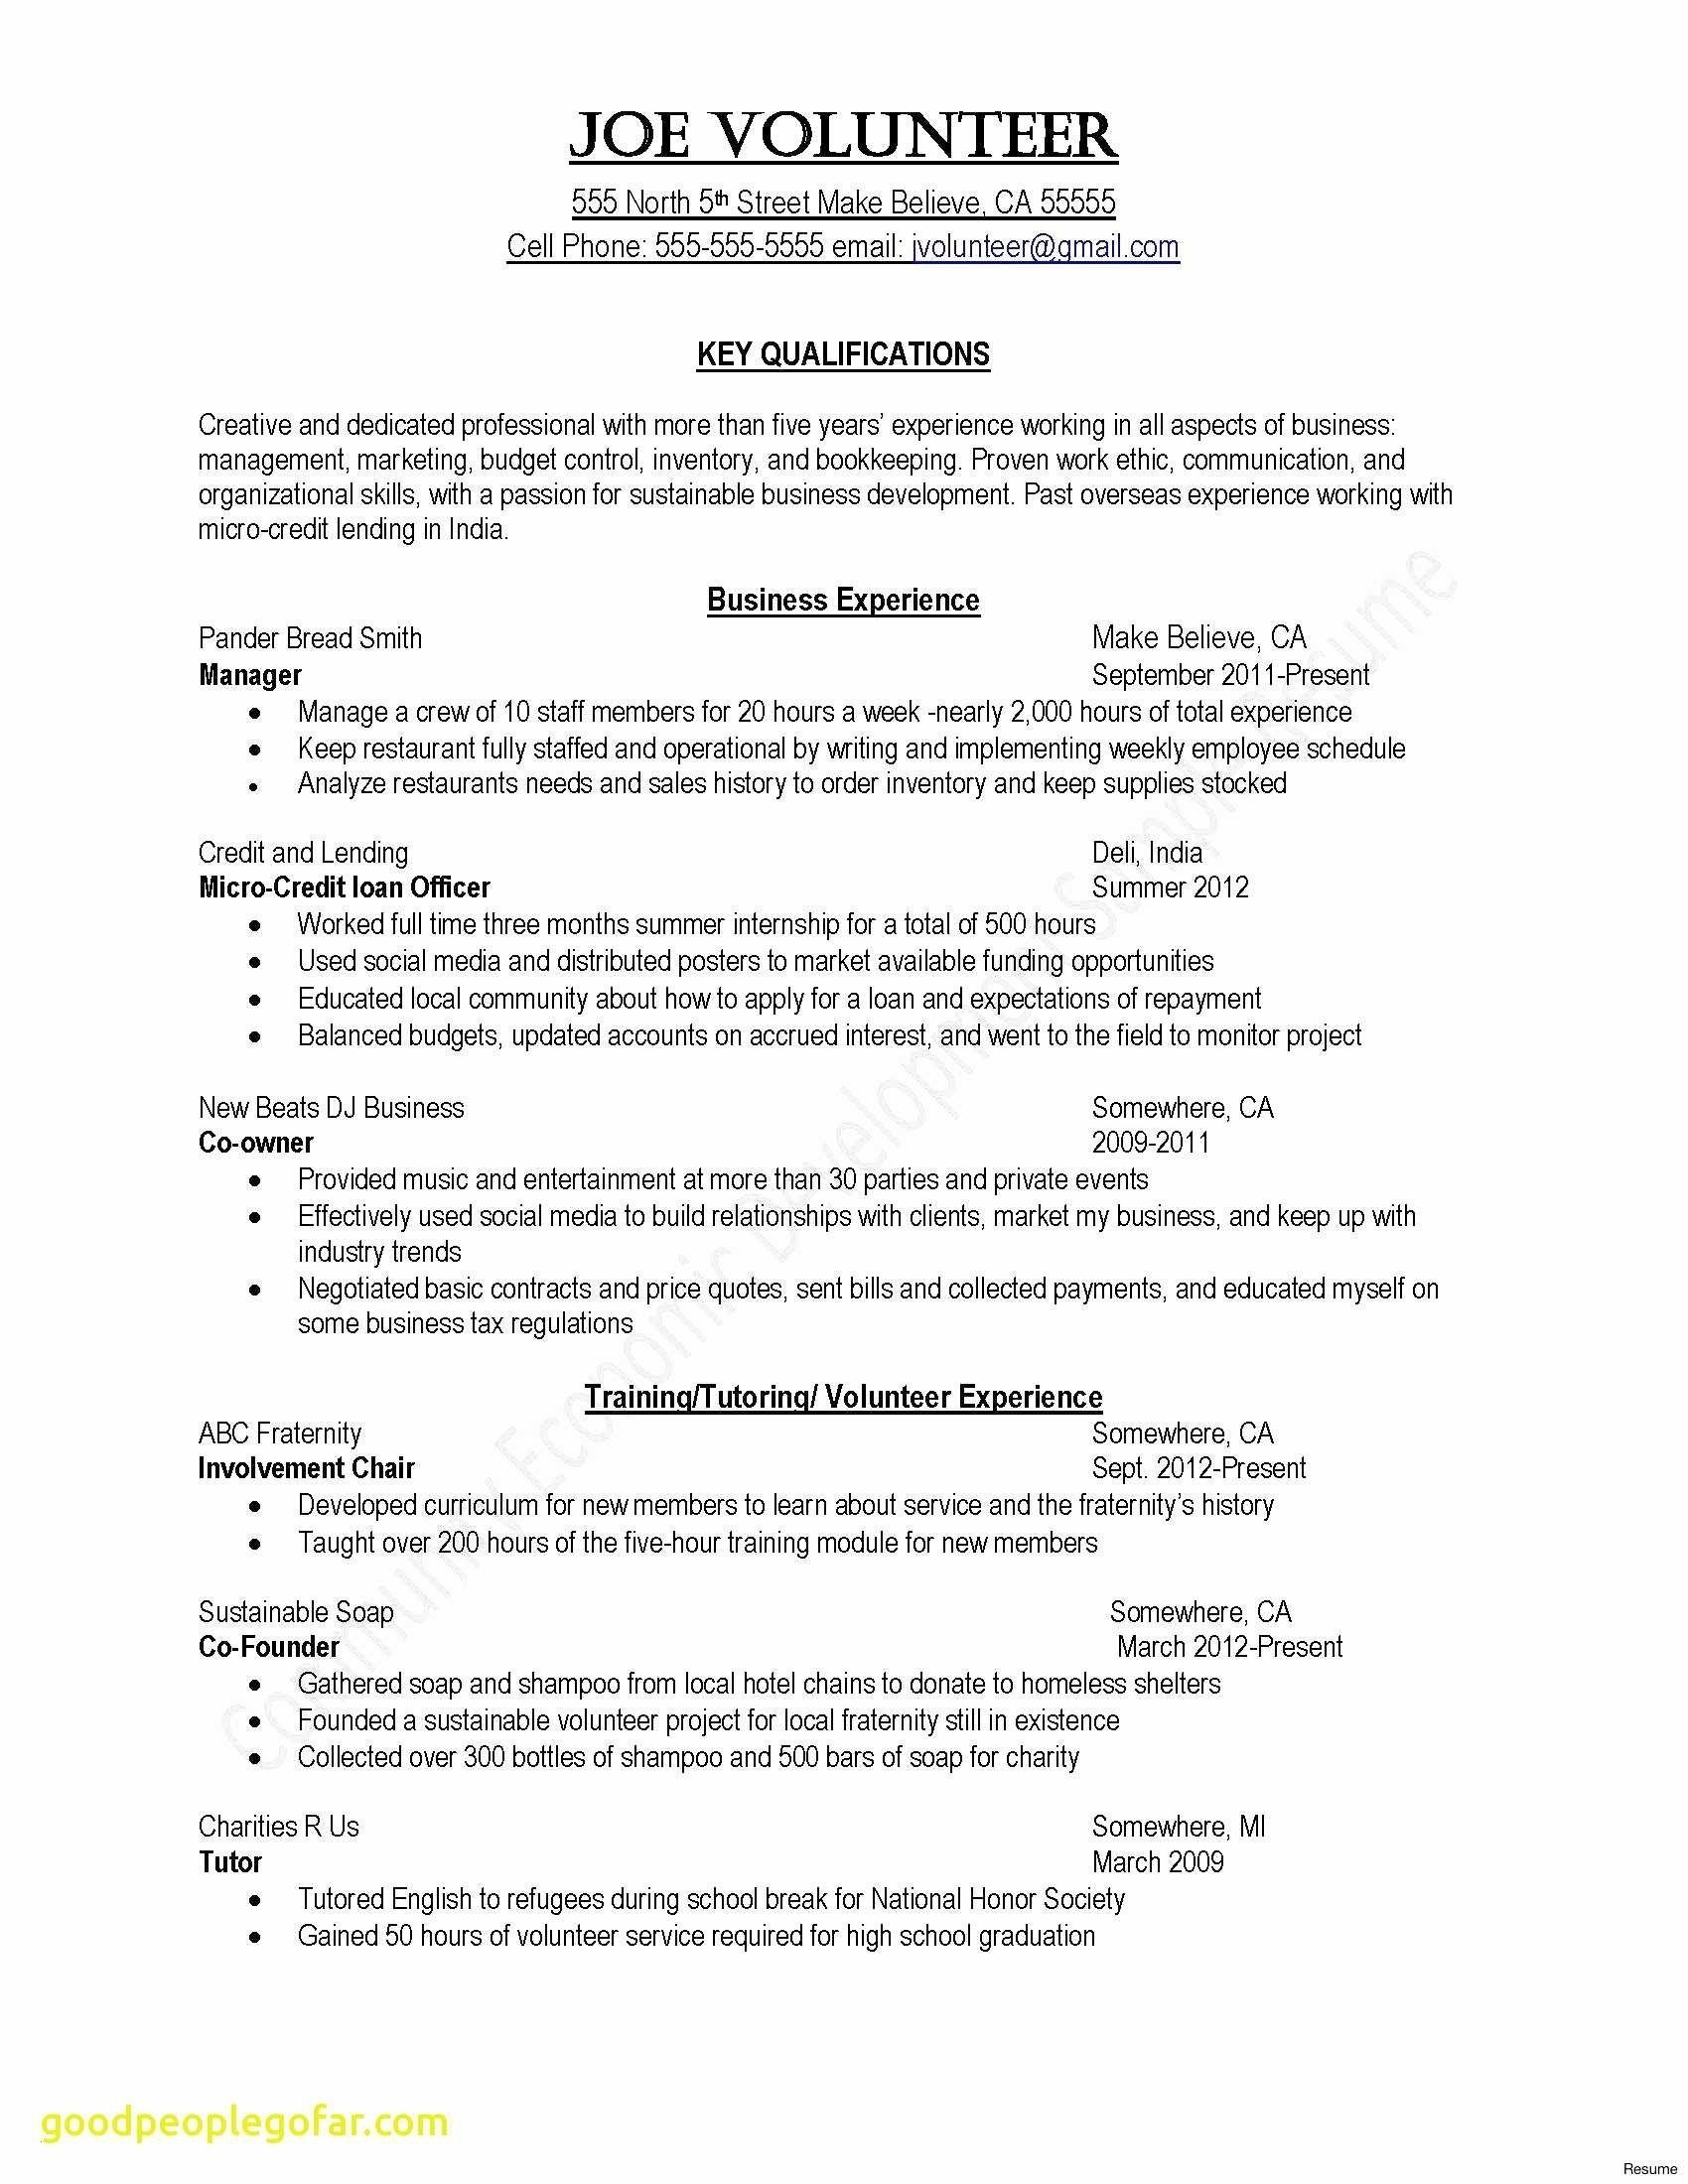 School Counselor Resume - Guidance Counselor Resume